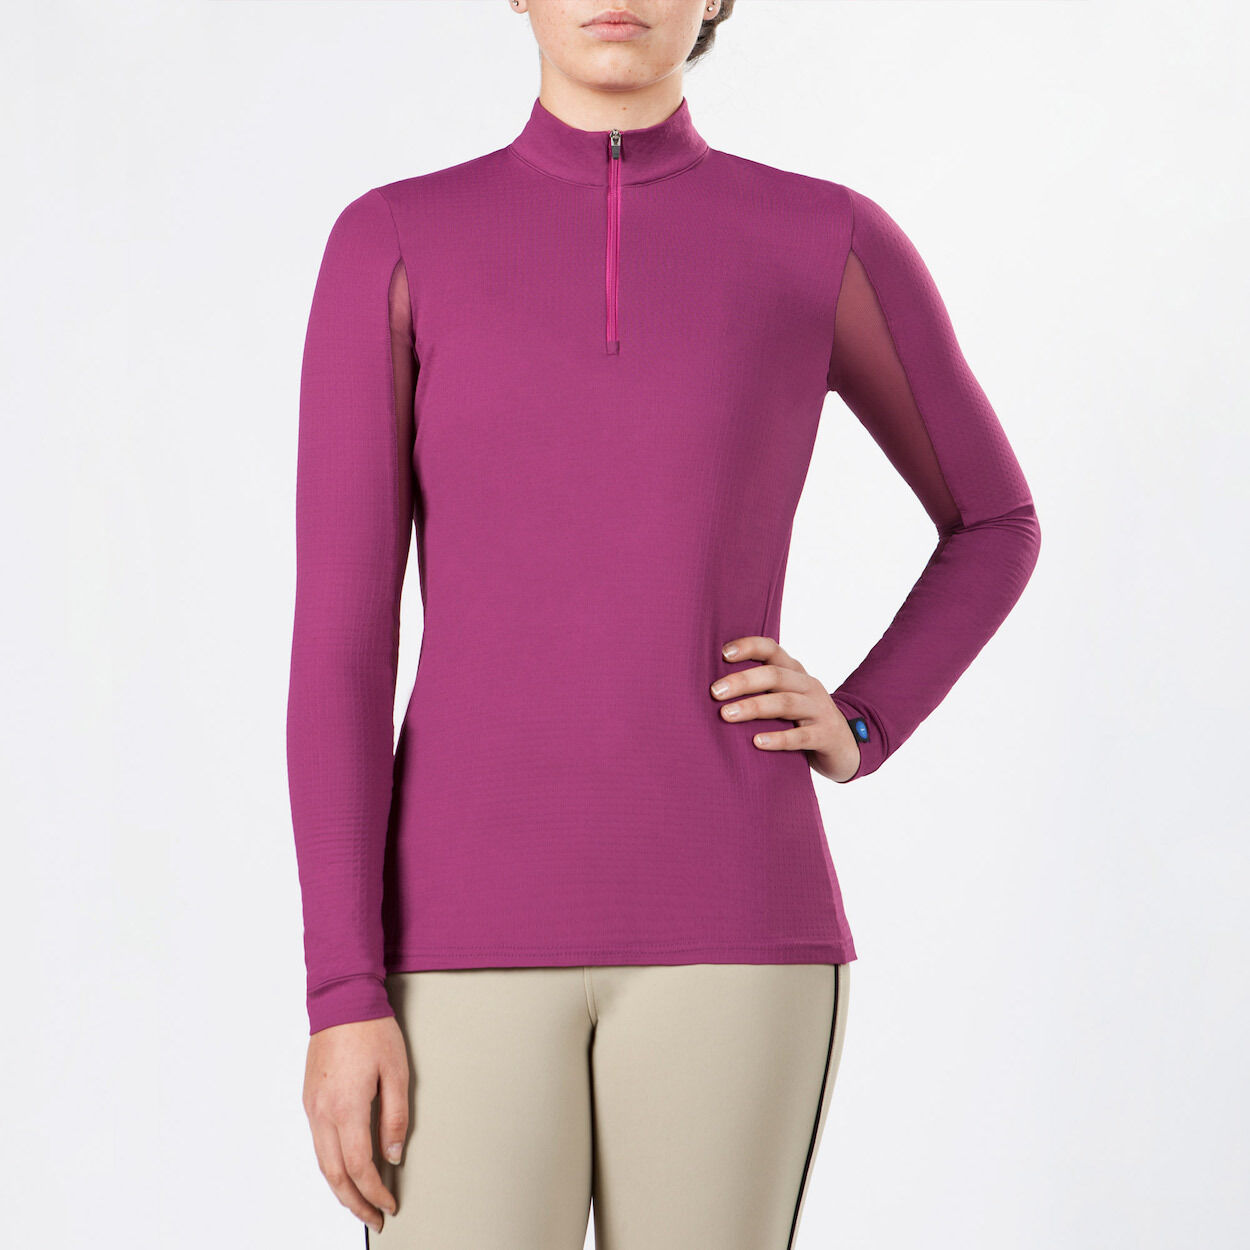 Irideon CoolDown IceFil Long Sleeve Jersey-Raspberry-L